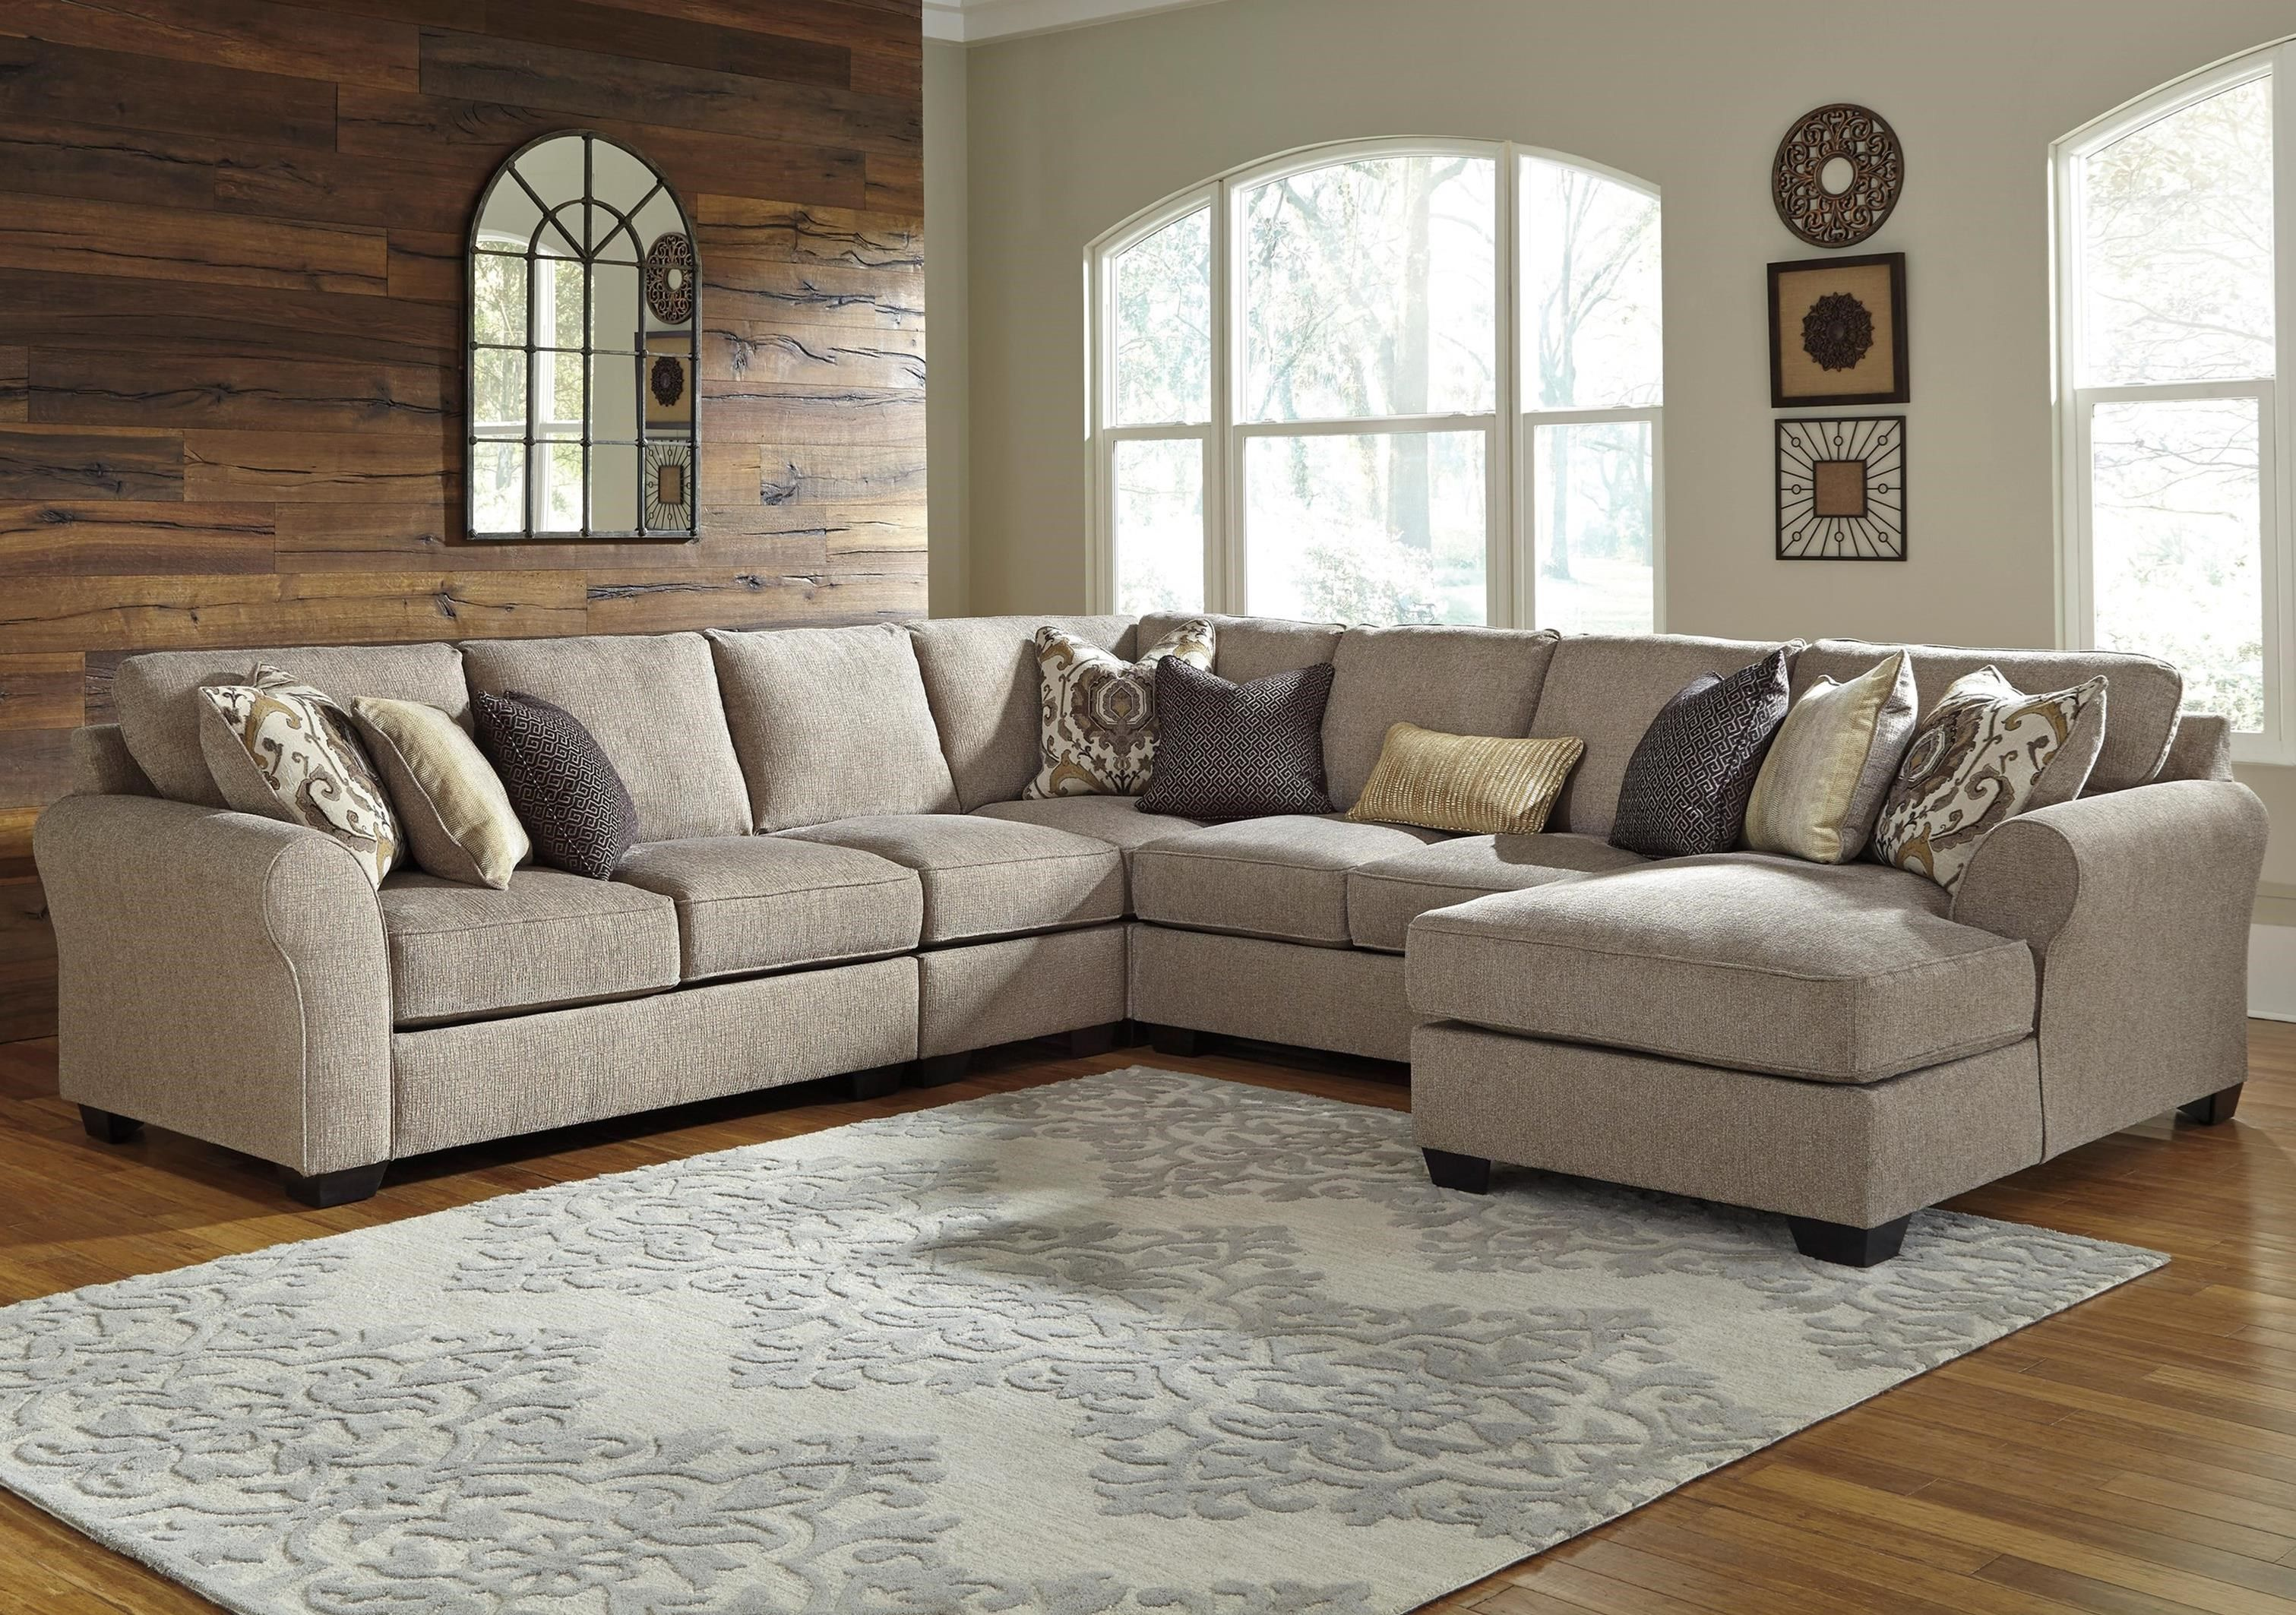 5 Piece Sectional Sofa With Chaise In 2020 Living Room Furniture City Furniture Sectional Sofa Couch